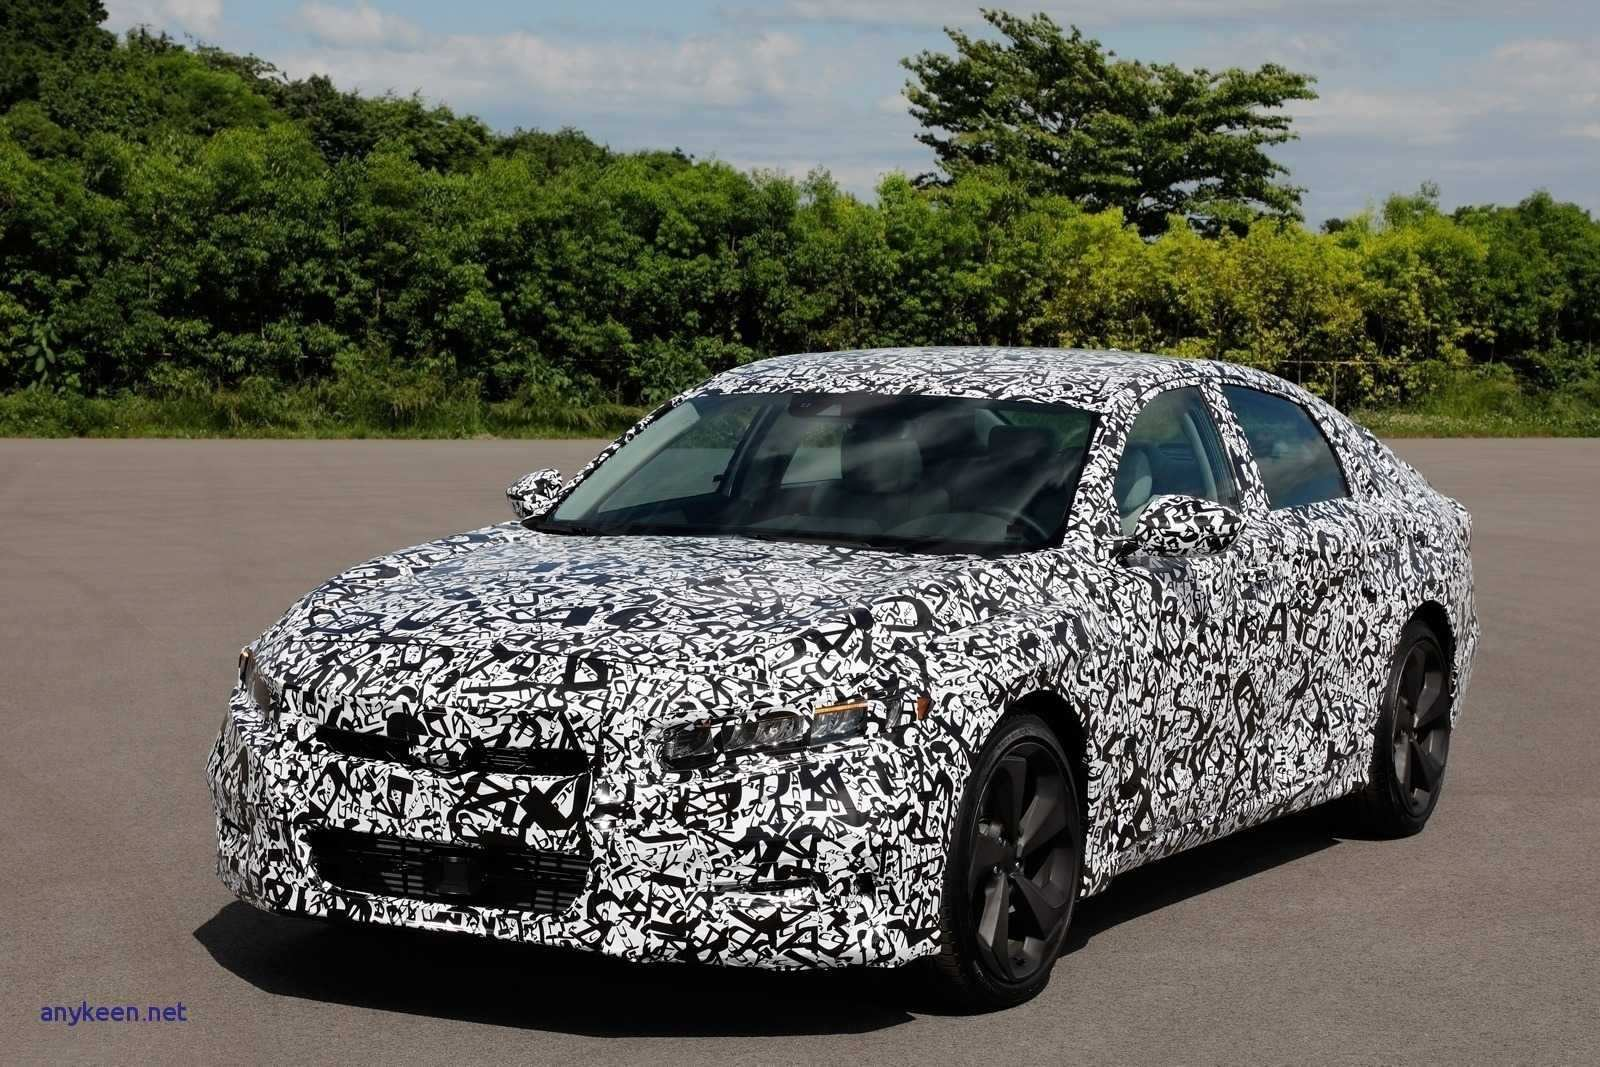 93 A 2019 Honda Prelude Images